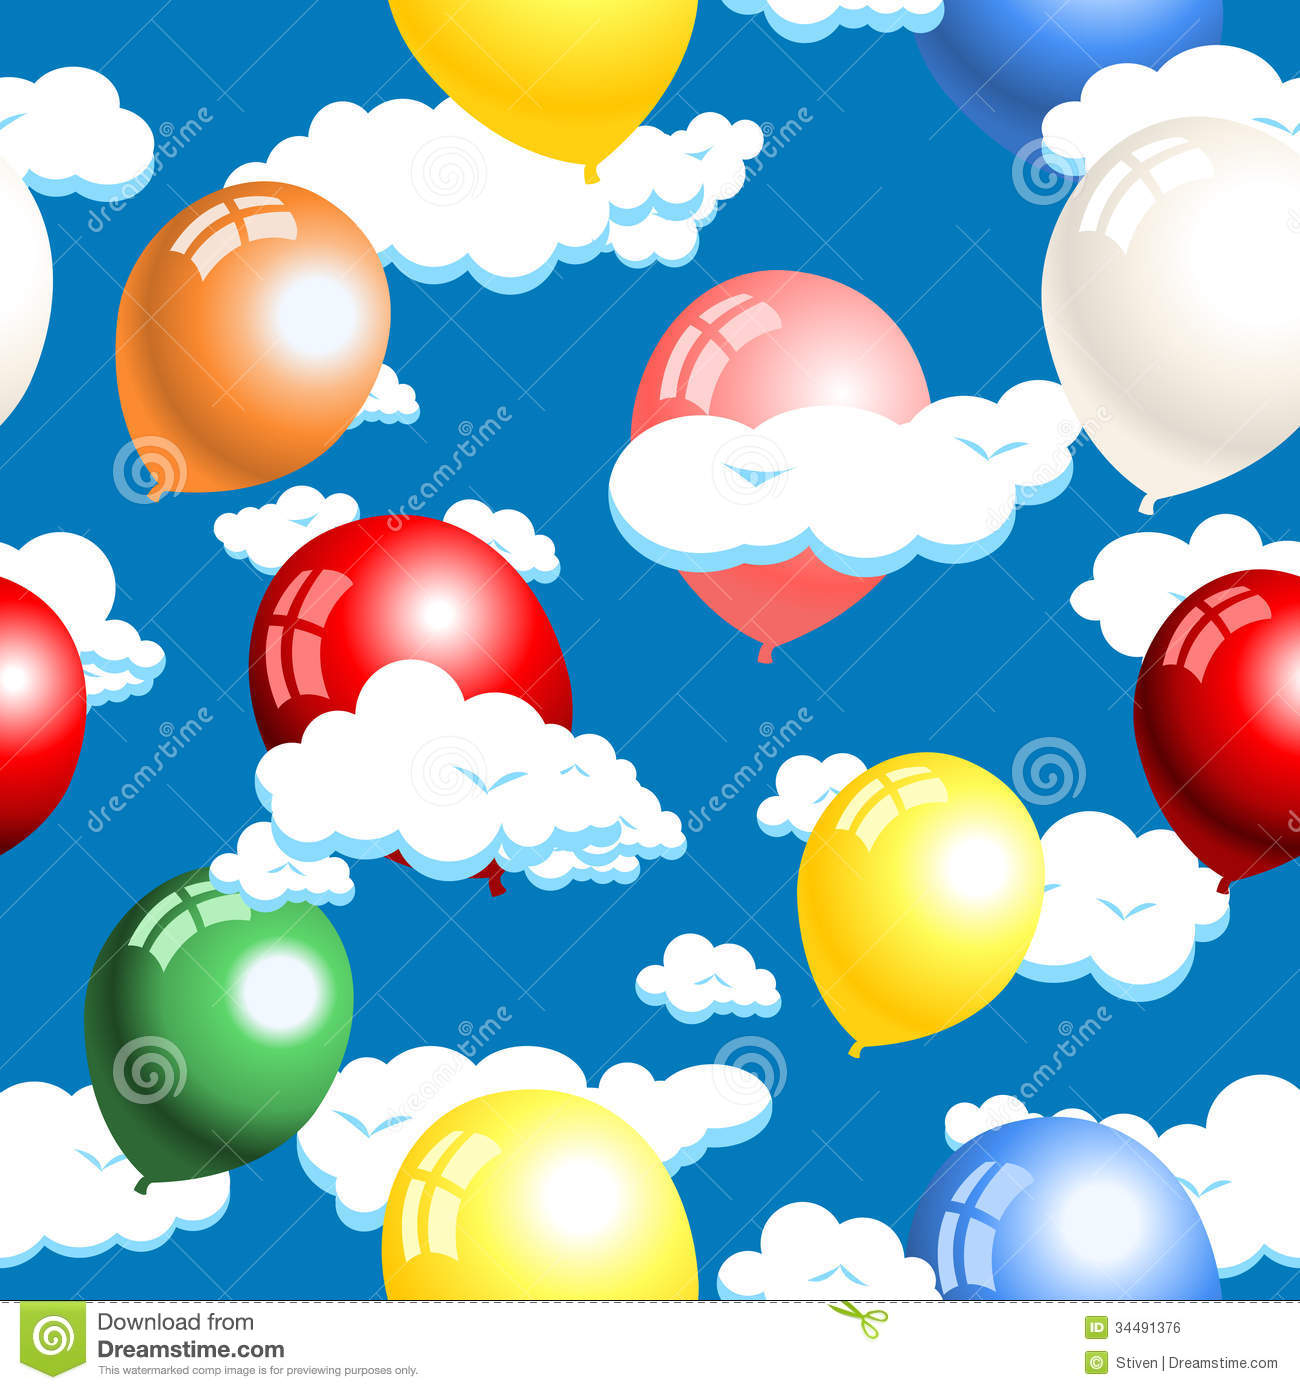 Clouds and balloons seamless royalty free stock image for Silver cloud balloons